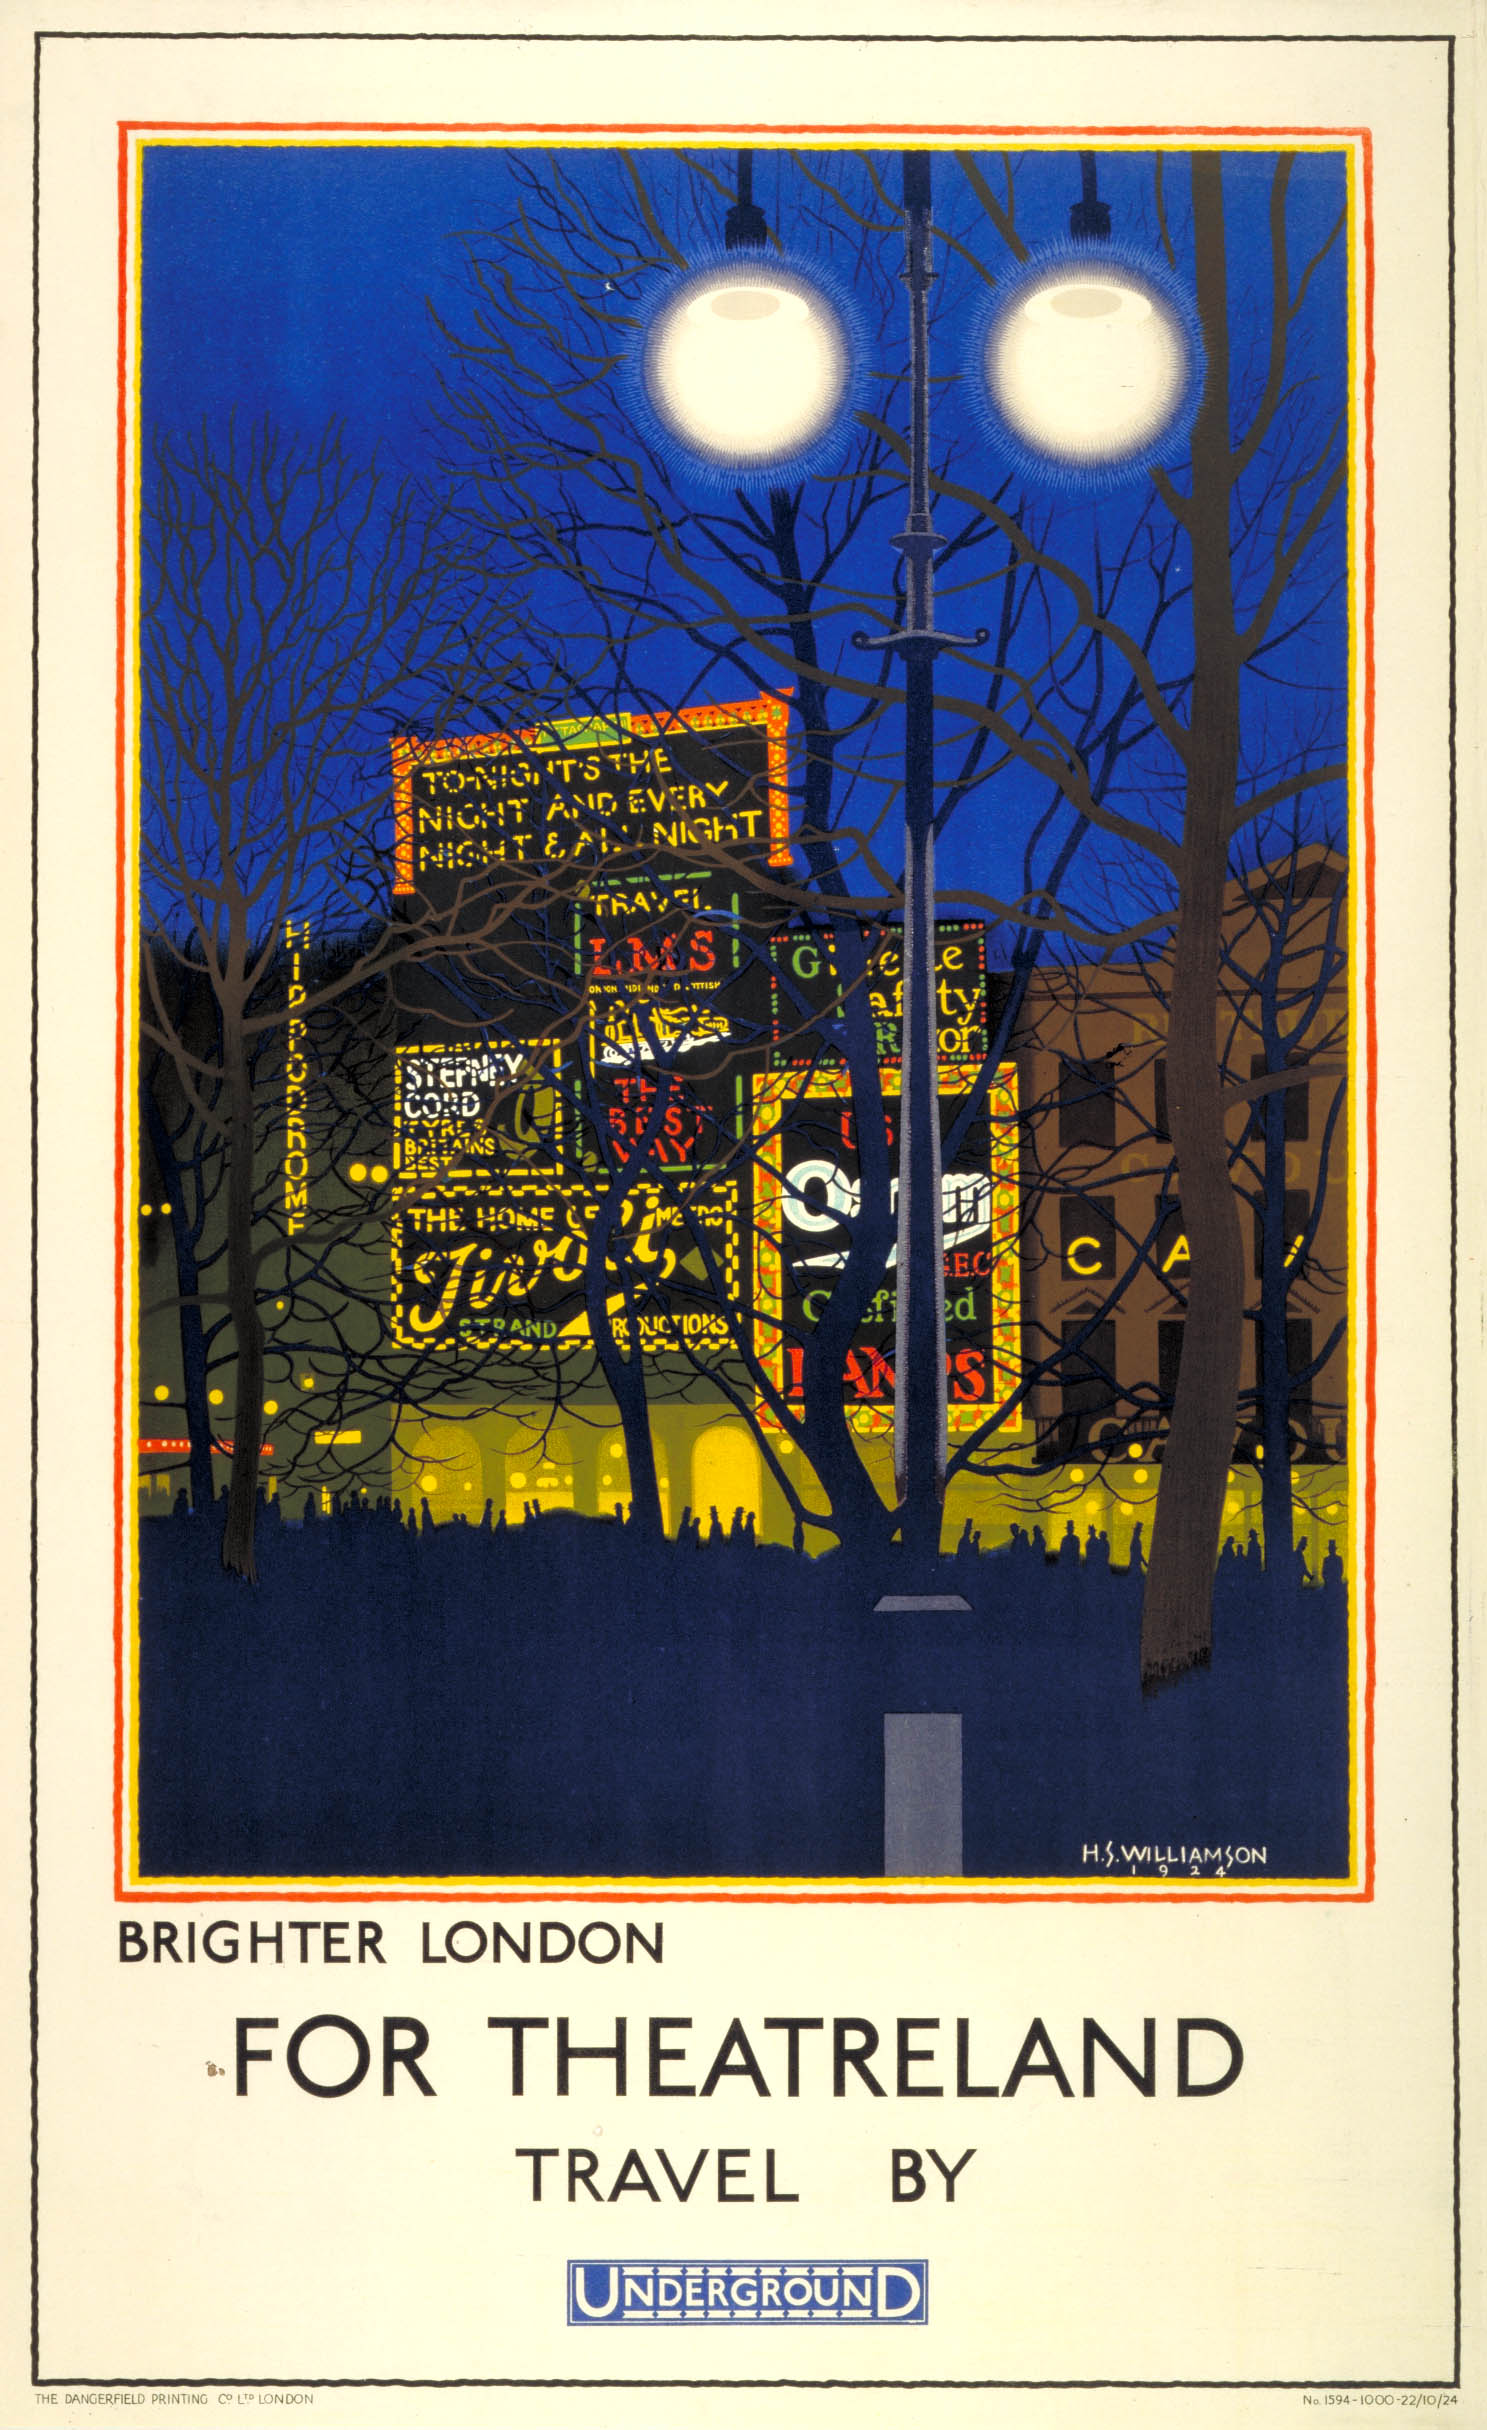 Brighter London for Theatreland by Harold Sandys Williamson, 1924